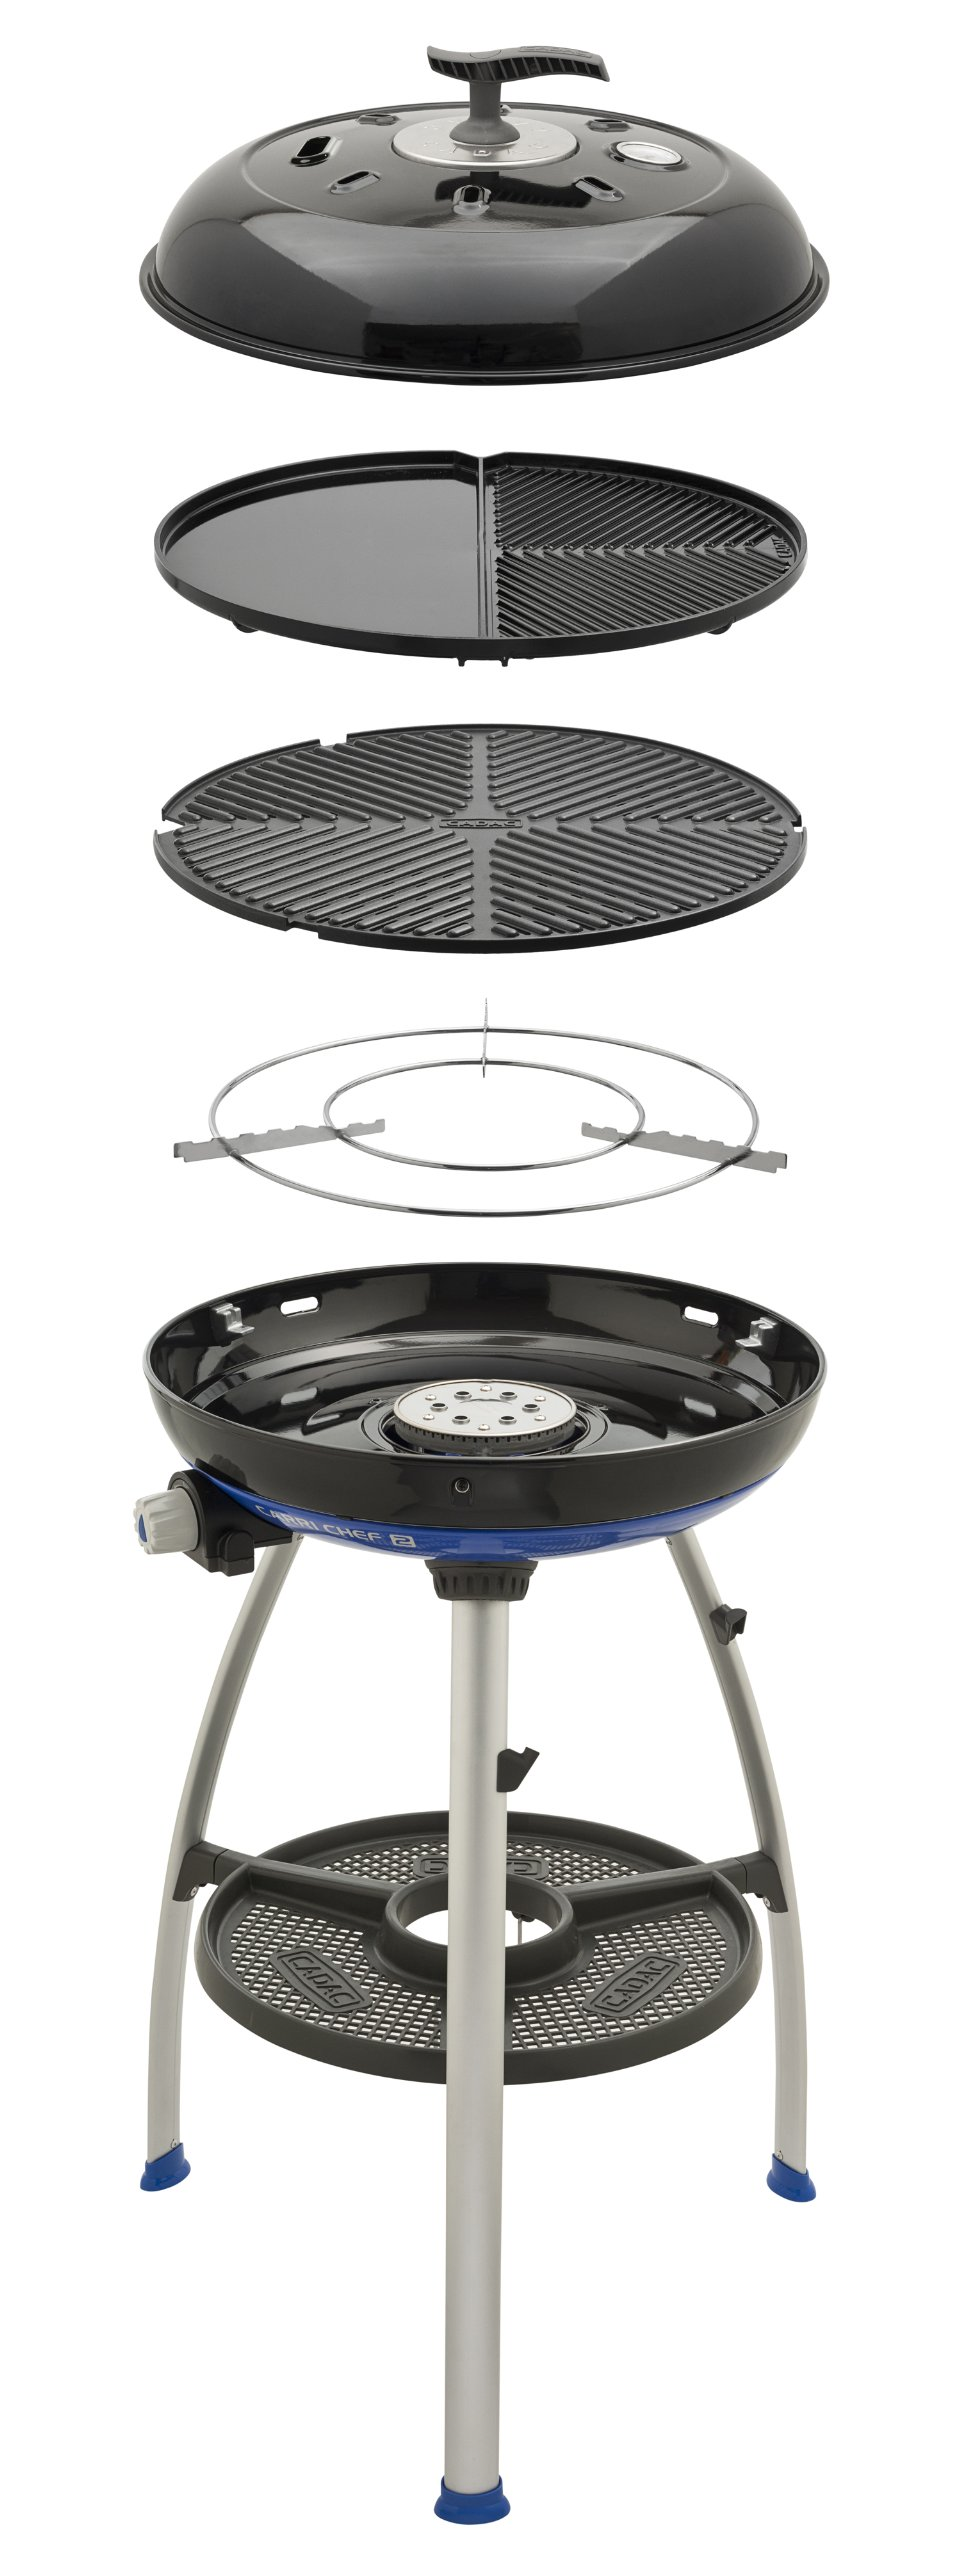 Cadac 8910-50 Carri Chef 2 Outdoor Grill with Pot Stand, Barbeque Grid and Split Grill/Griddle Plate by CADAC